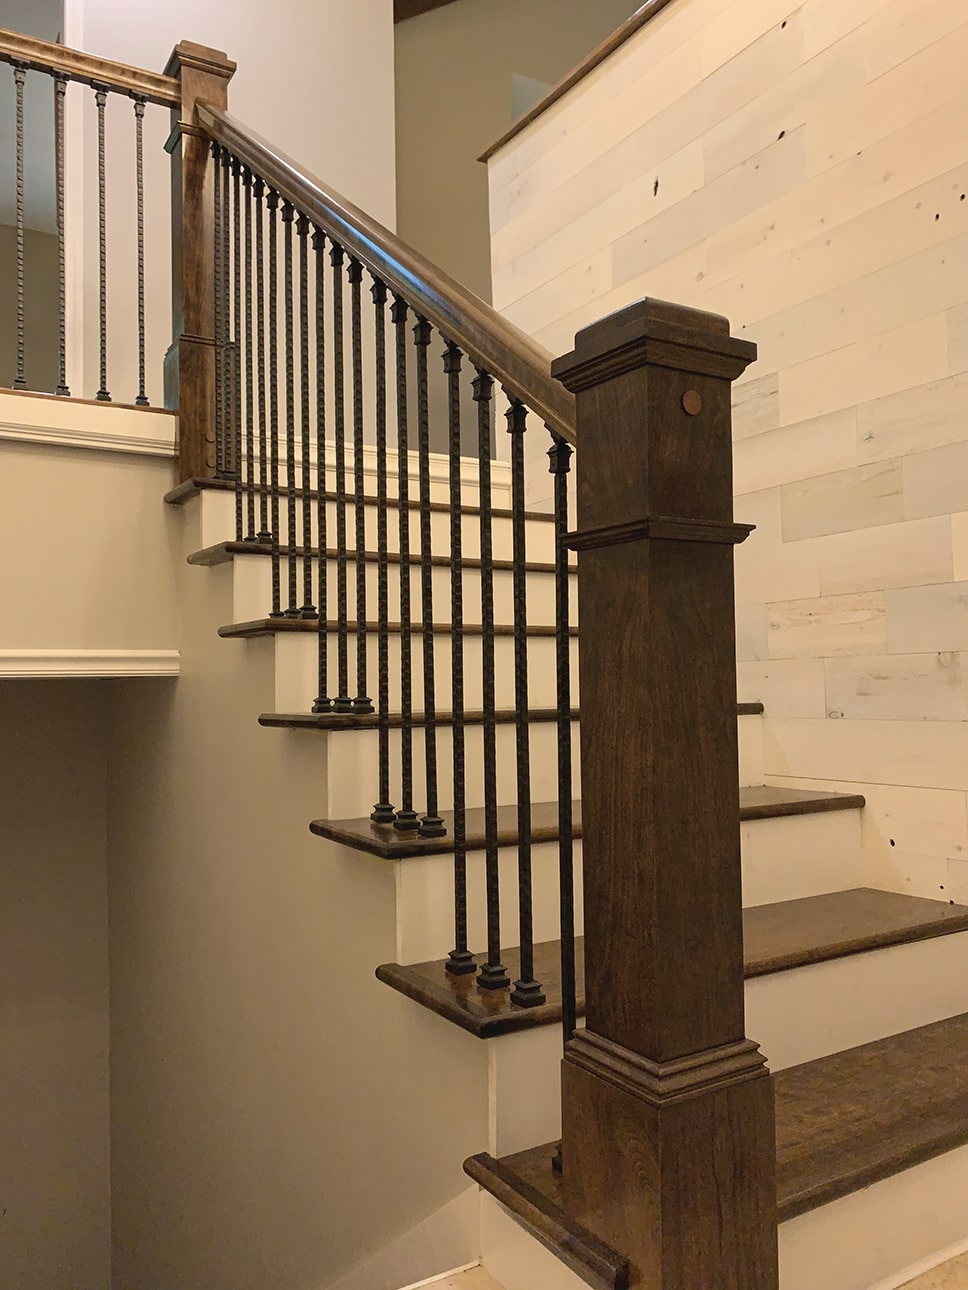 Diy Stair Rail Installation Extreme How To | Round Stairs Railing Design | Metal | Silver | Loft | Stainless Steel | Brown